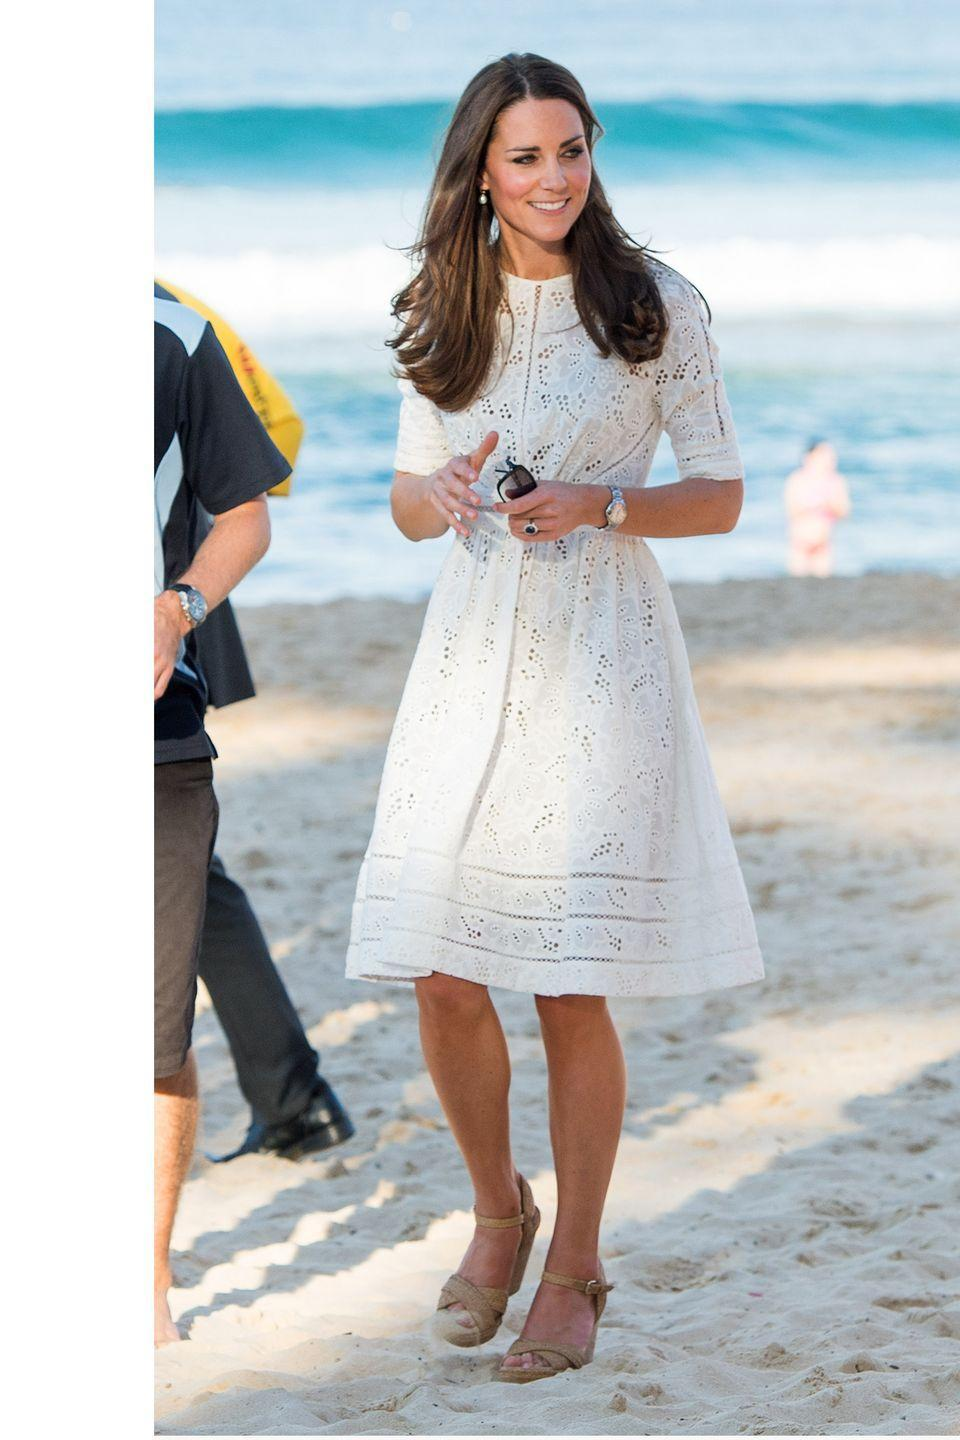 <p>Visiting Manly Beach in Sydney, Australia in a Zimmerman dress</p>